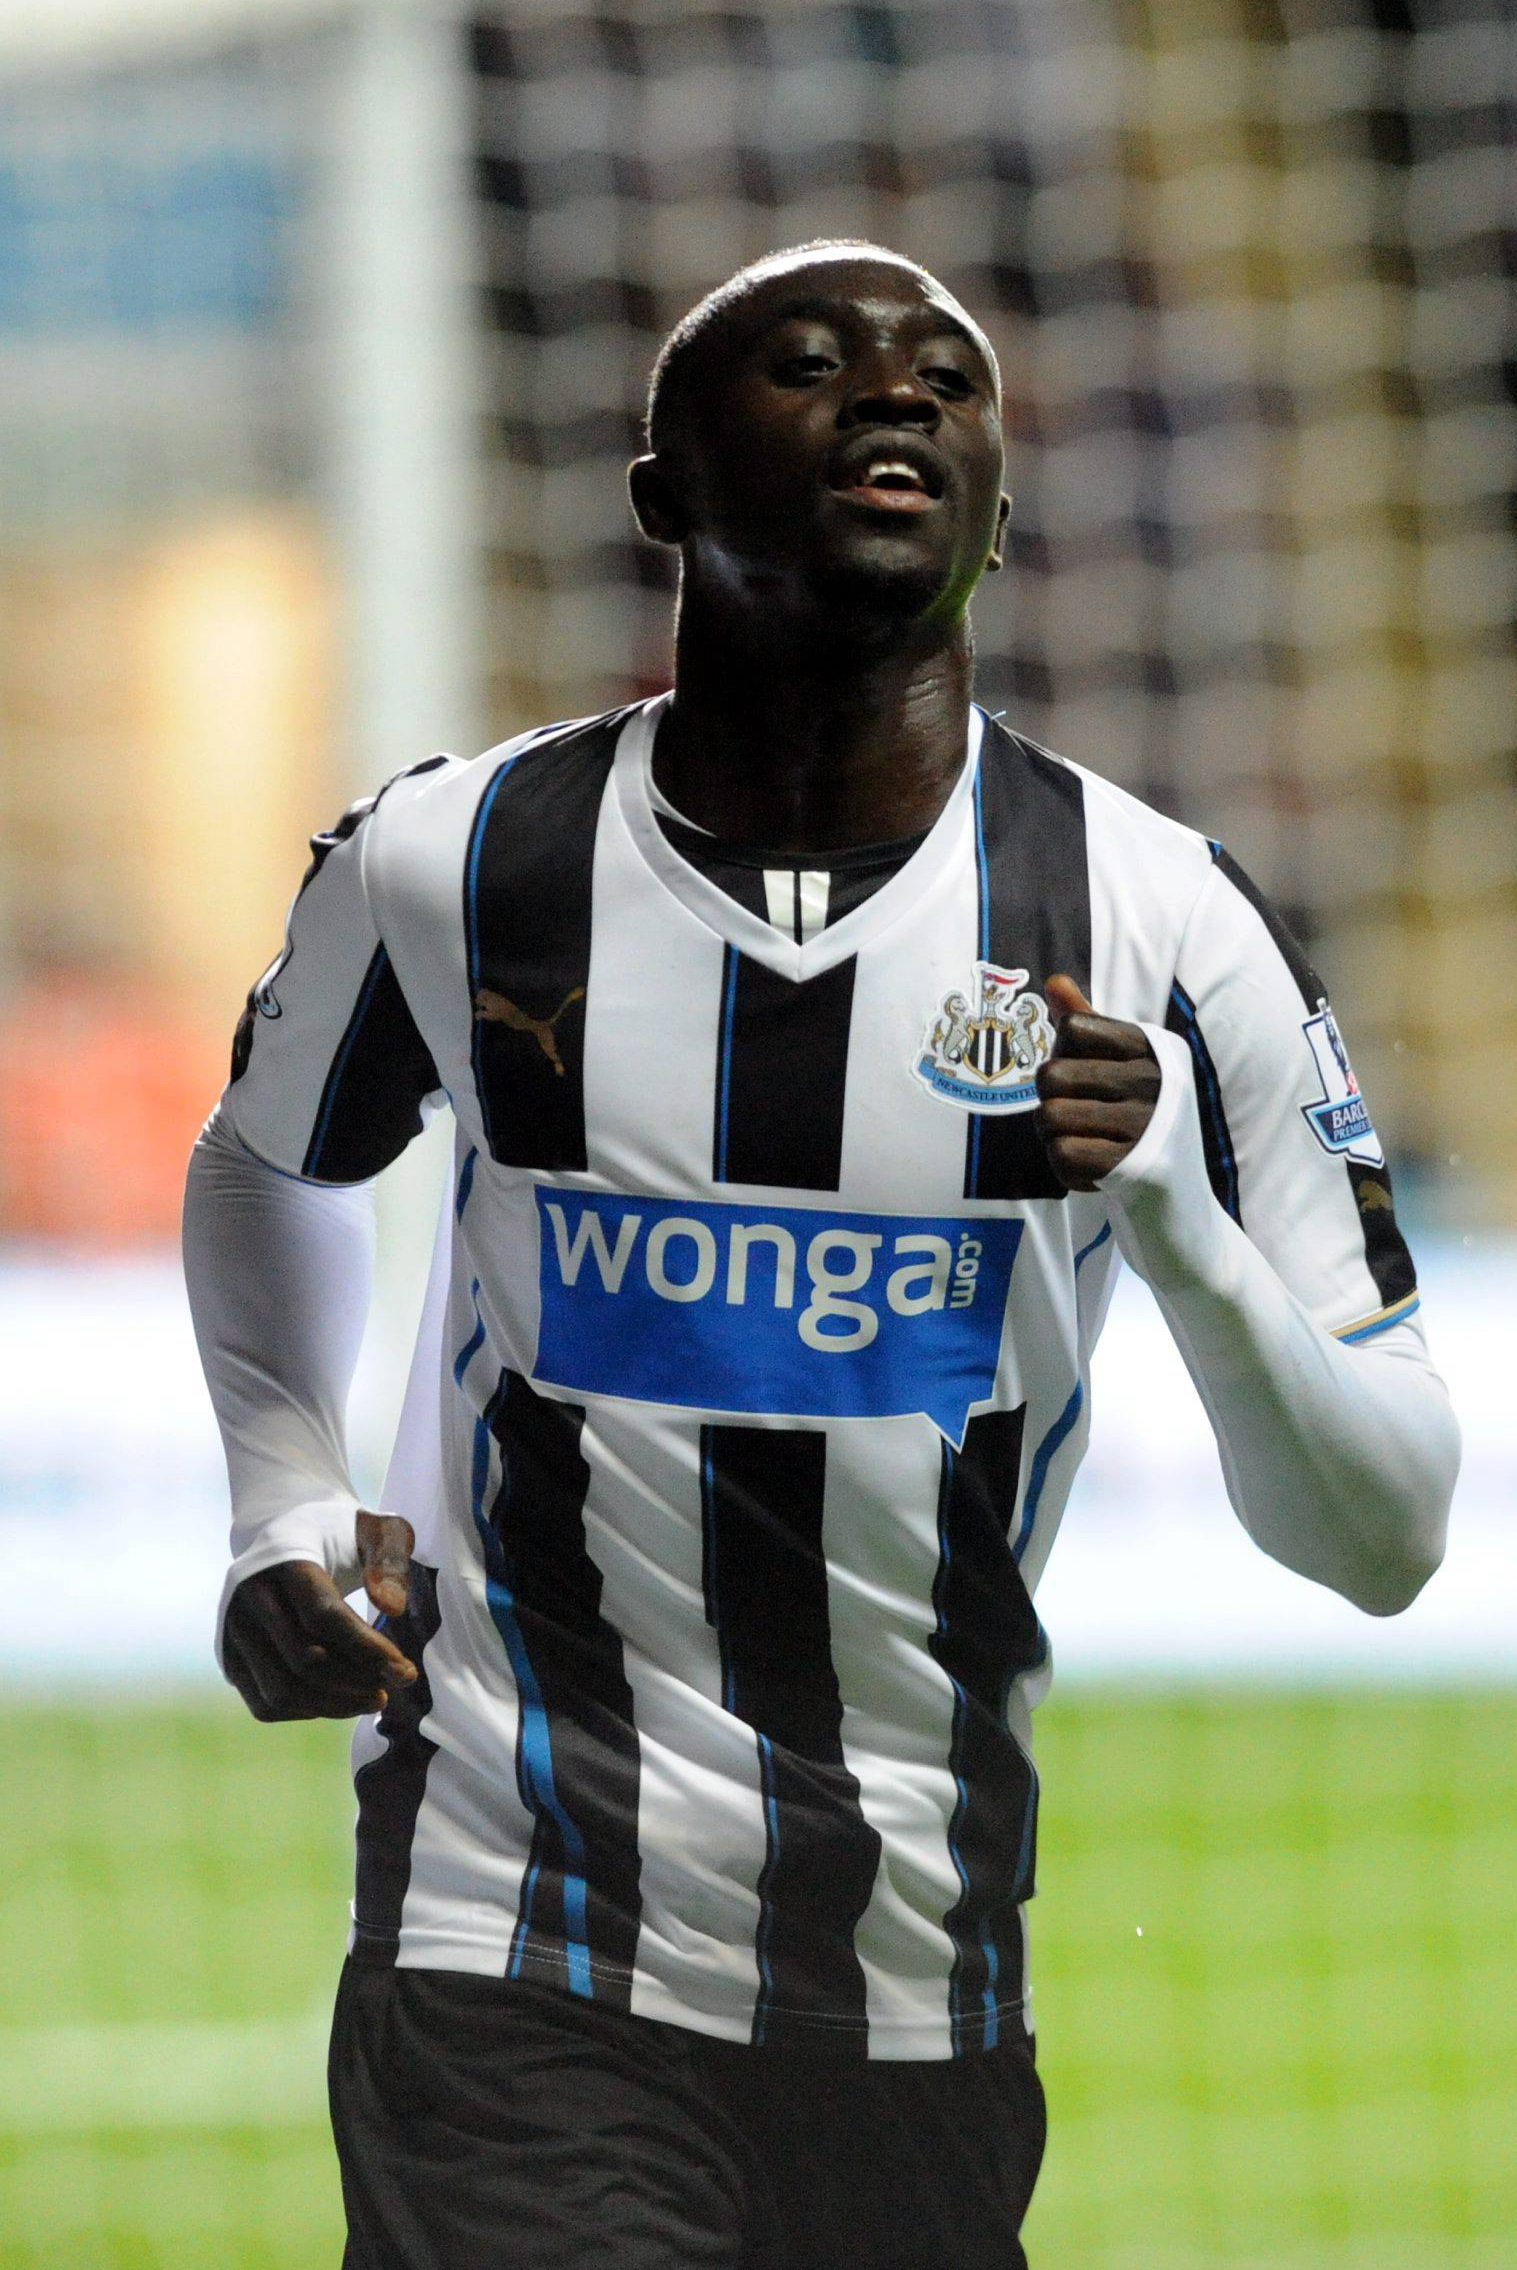 Match report: Newcastle United 1 Crystal Palace 0